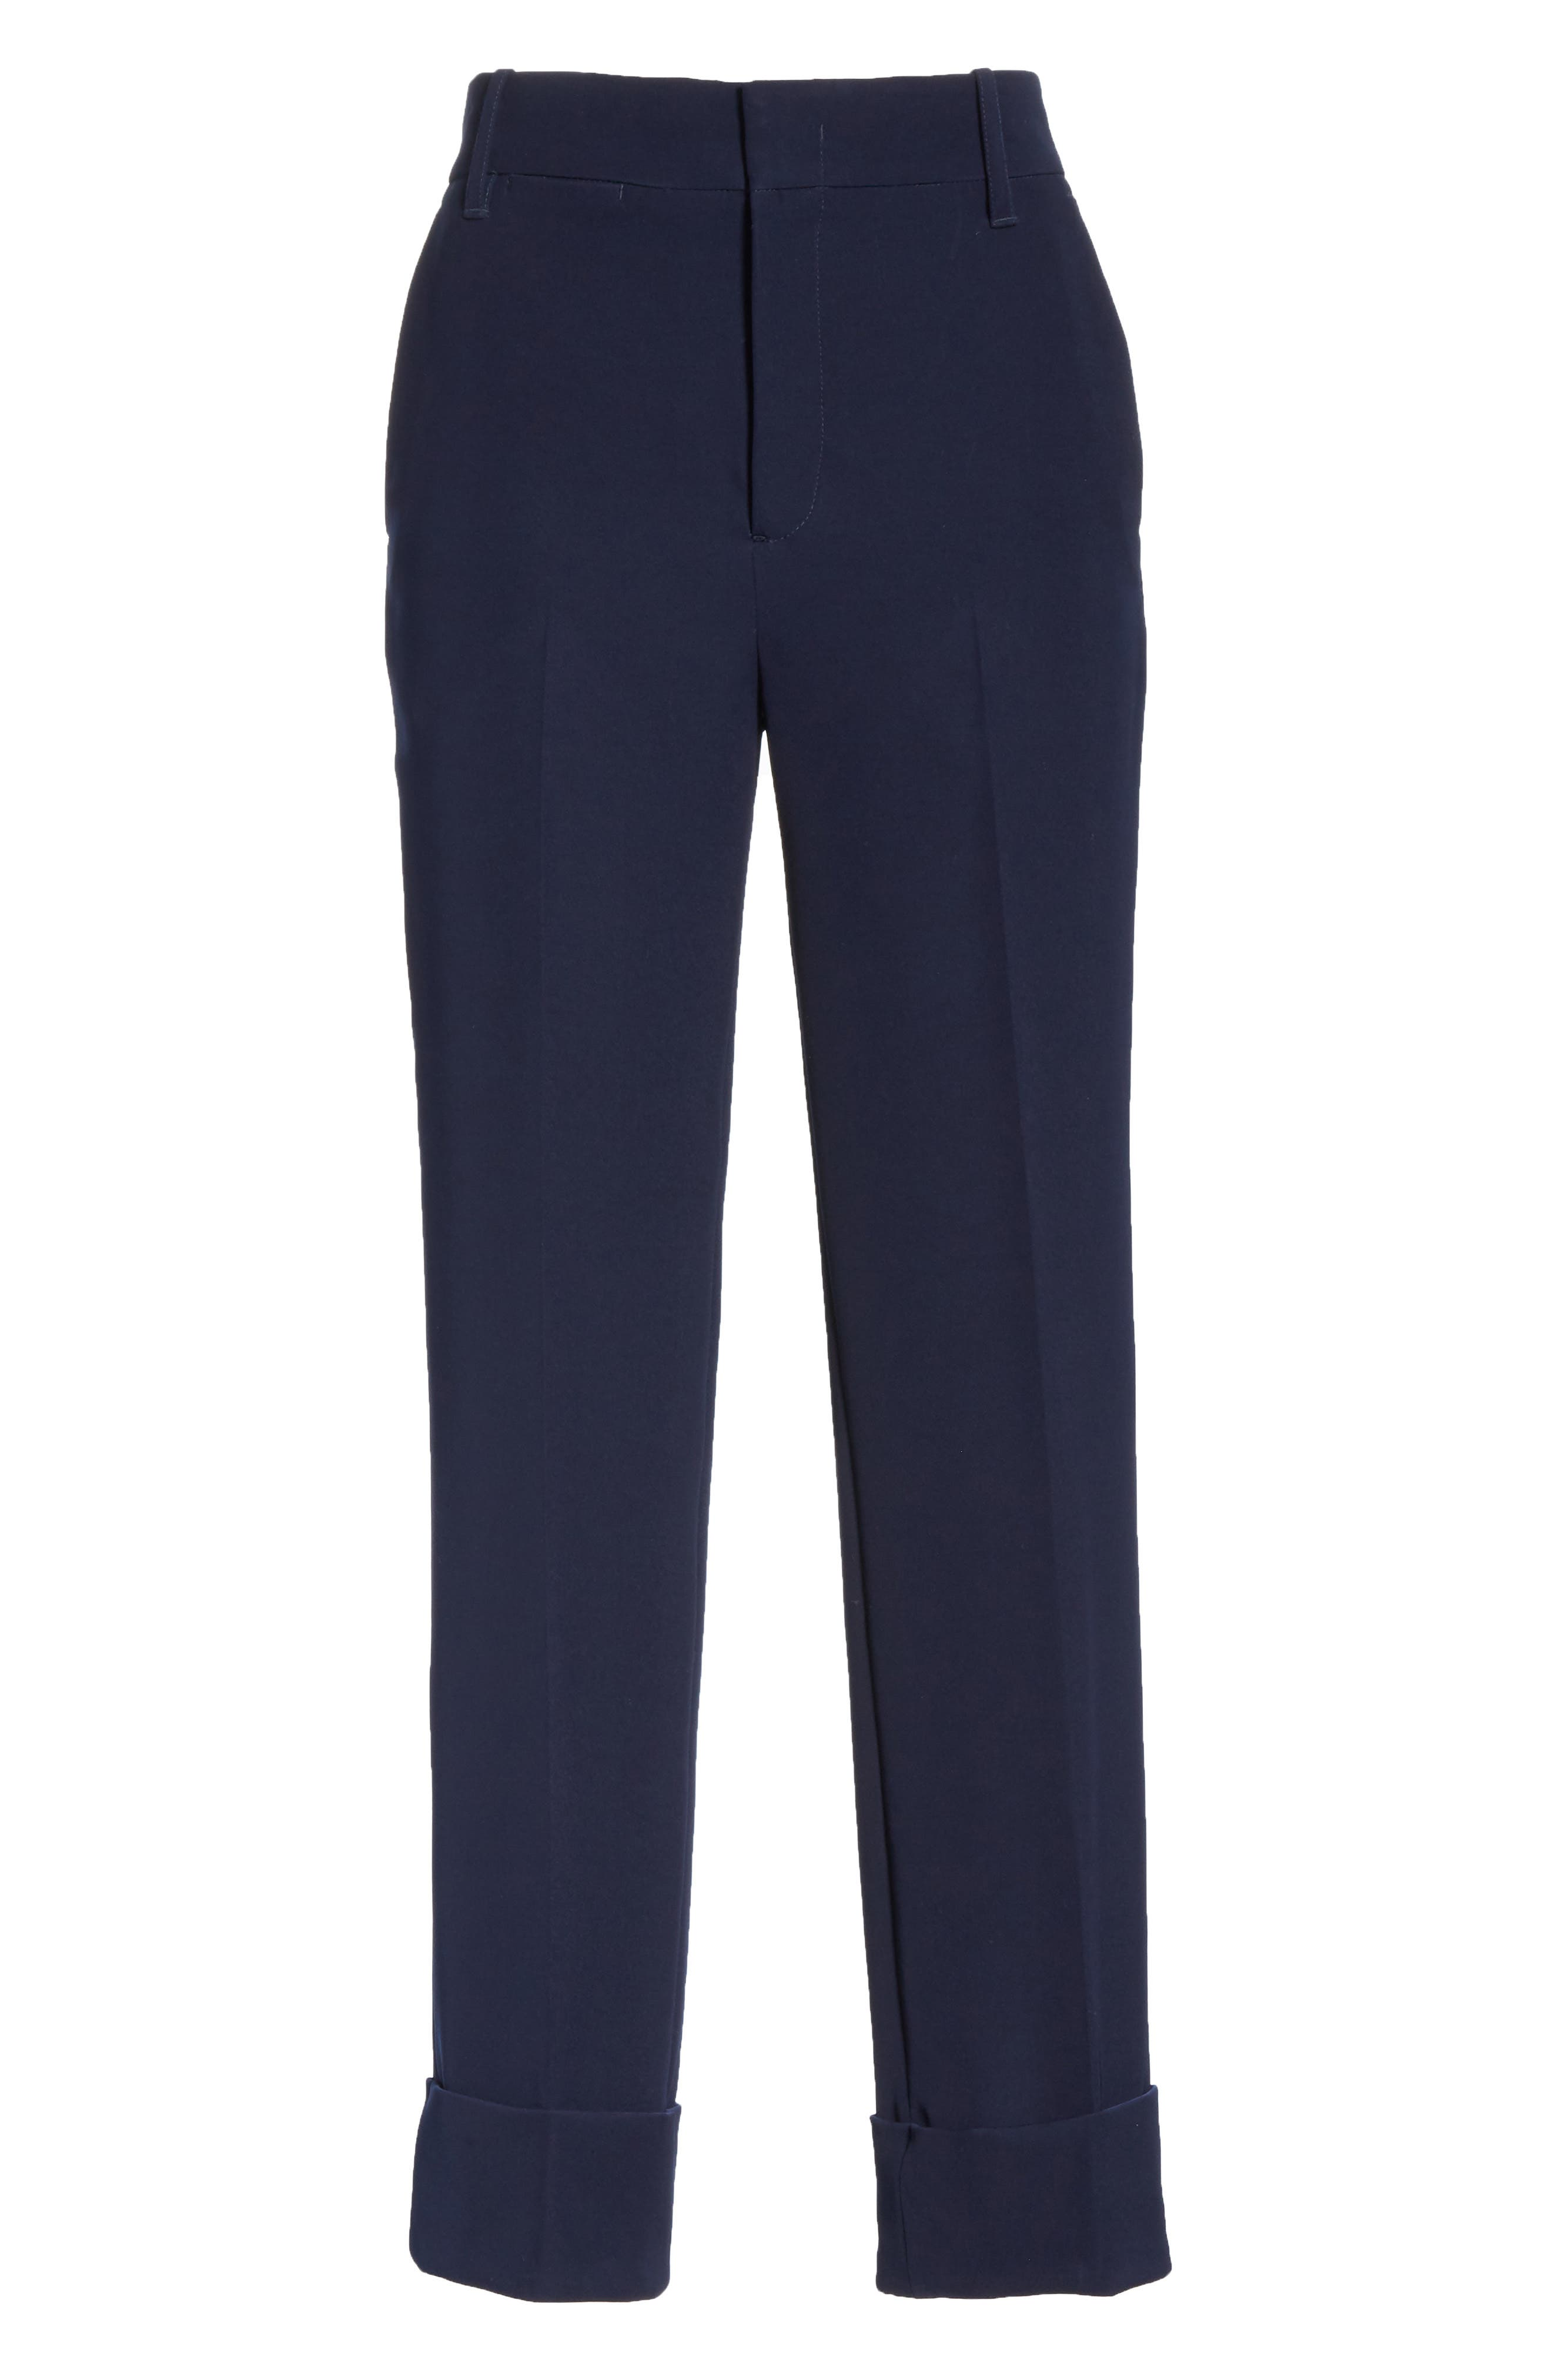 Cuffed Ankle Trousers,                             Alternate thumbnail 6, color,                             NAVY